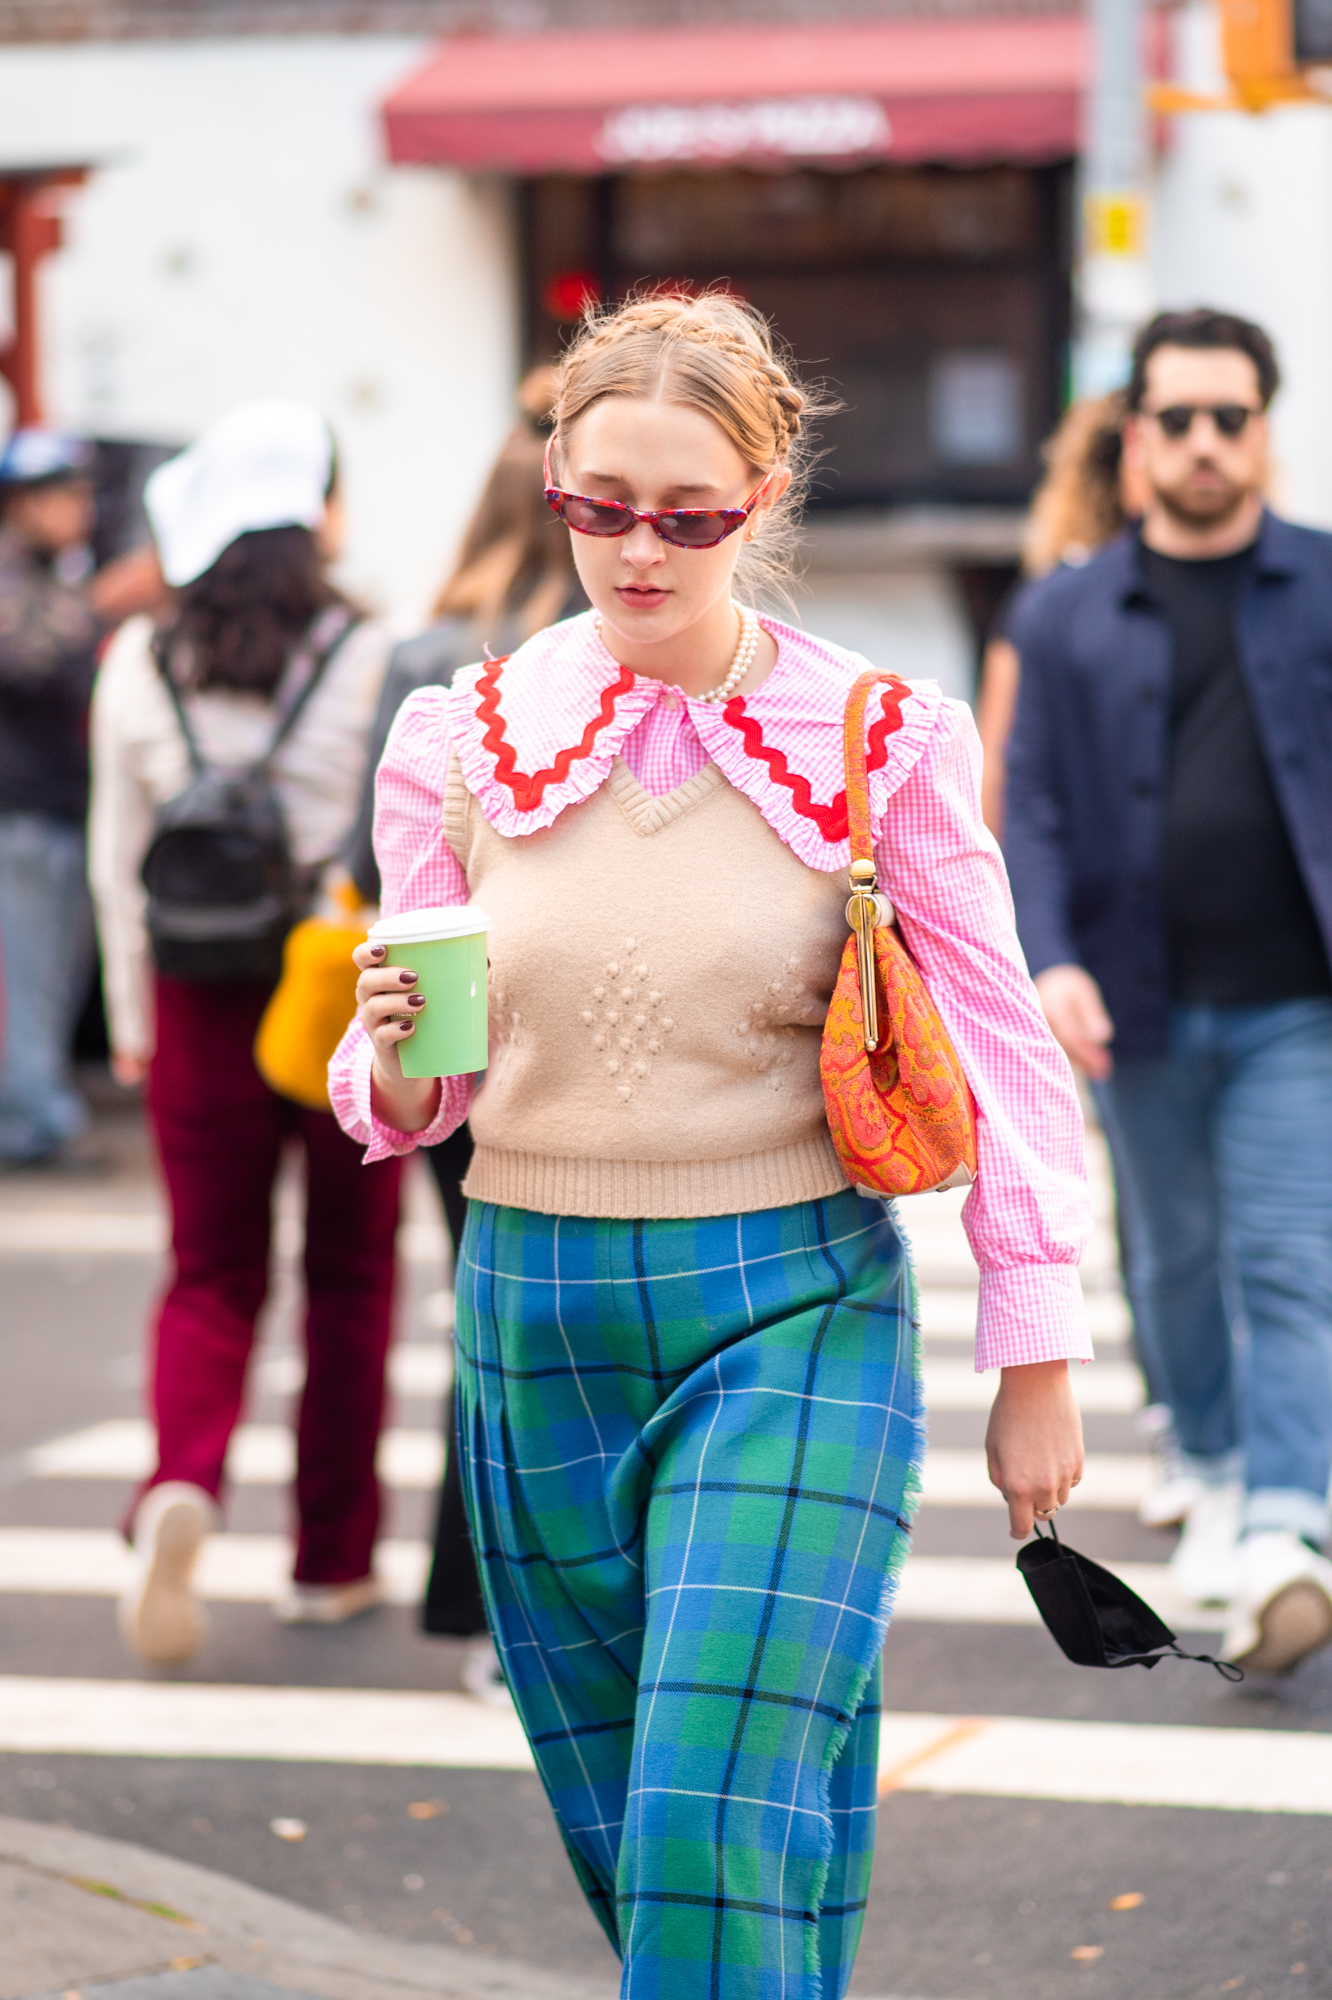 NYC street style fall outfit idea - woman wearing eccentric maximalist outfit for fall - Karya Schanilec NYC fashion photographer